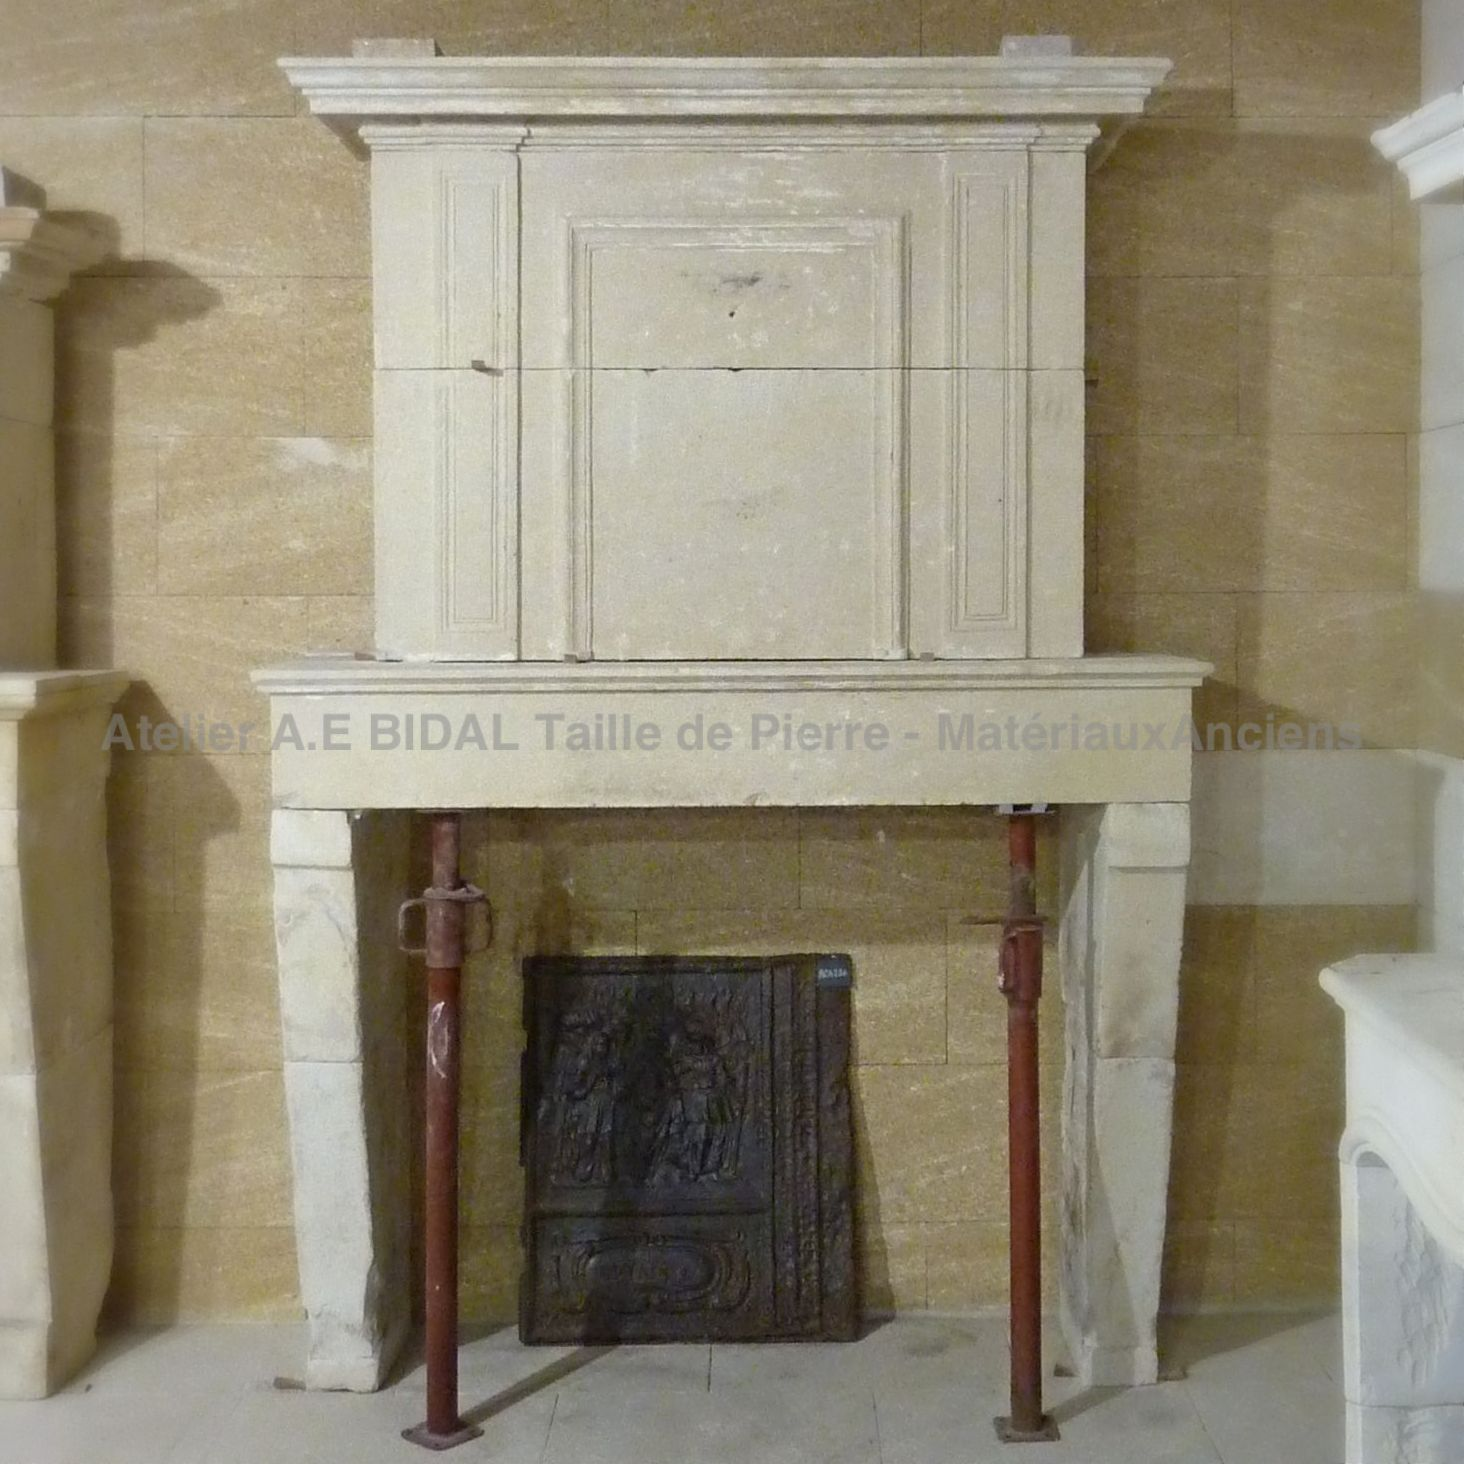 Fireplaces in stone of period and style Louis XVI at Alain Bidal - Provence.